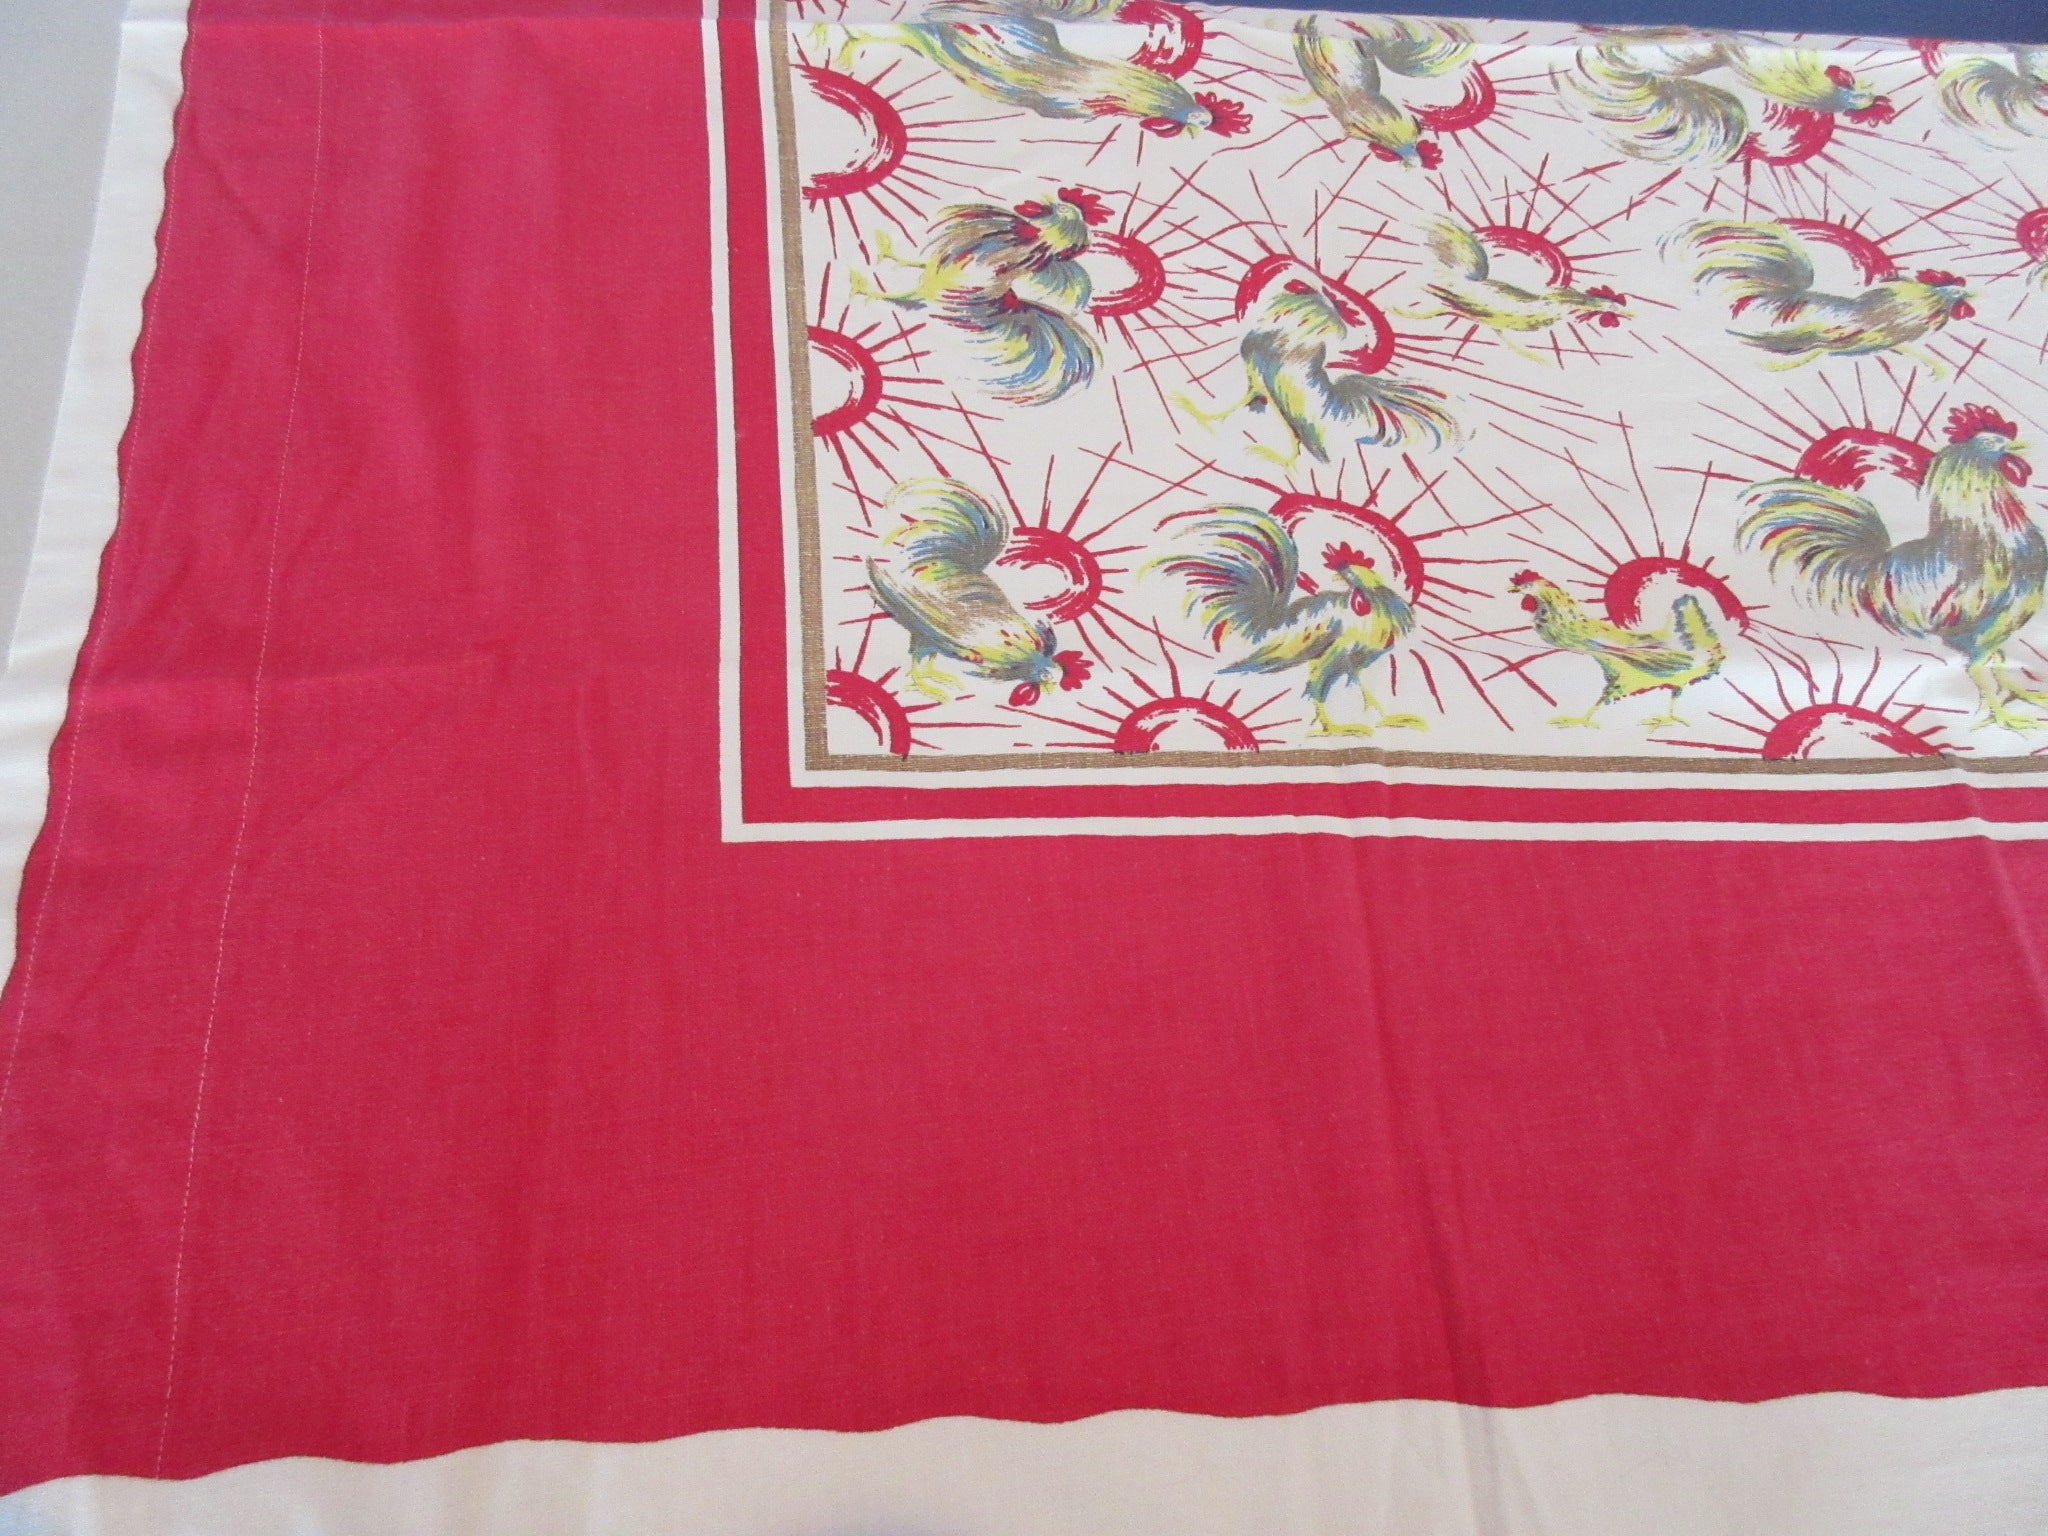 Trimmed Roosters on Red Curtain? Novelty Vintage Printed Tablecloth (46 X 44)